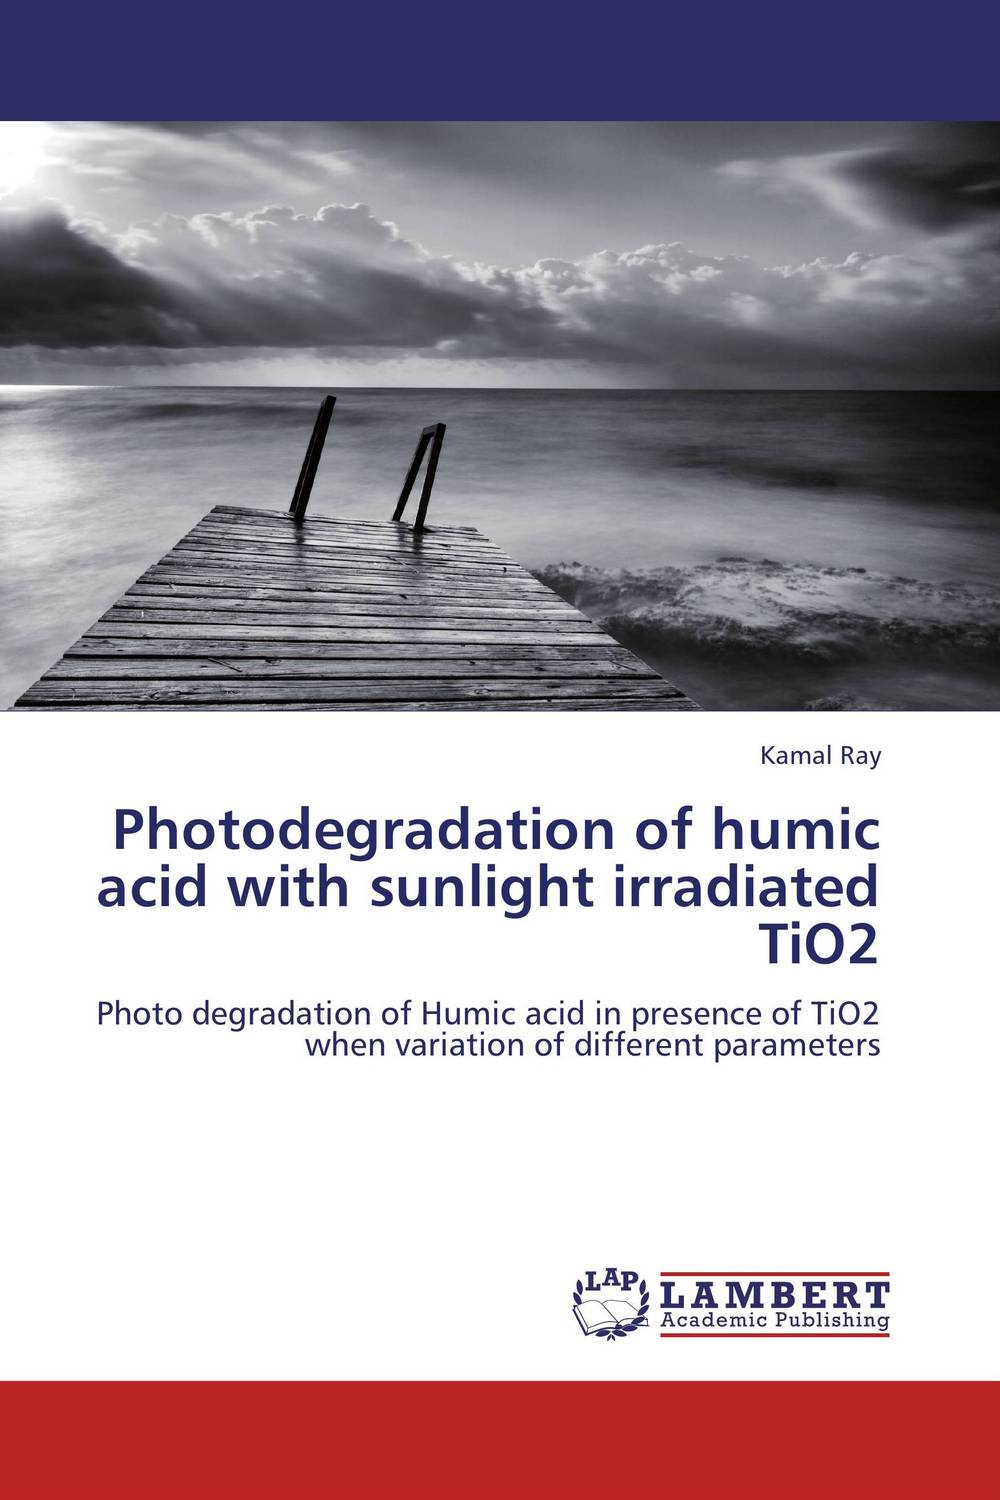 Photodegradation of humic acid with sunlight irradiated TiO2